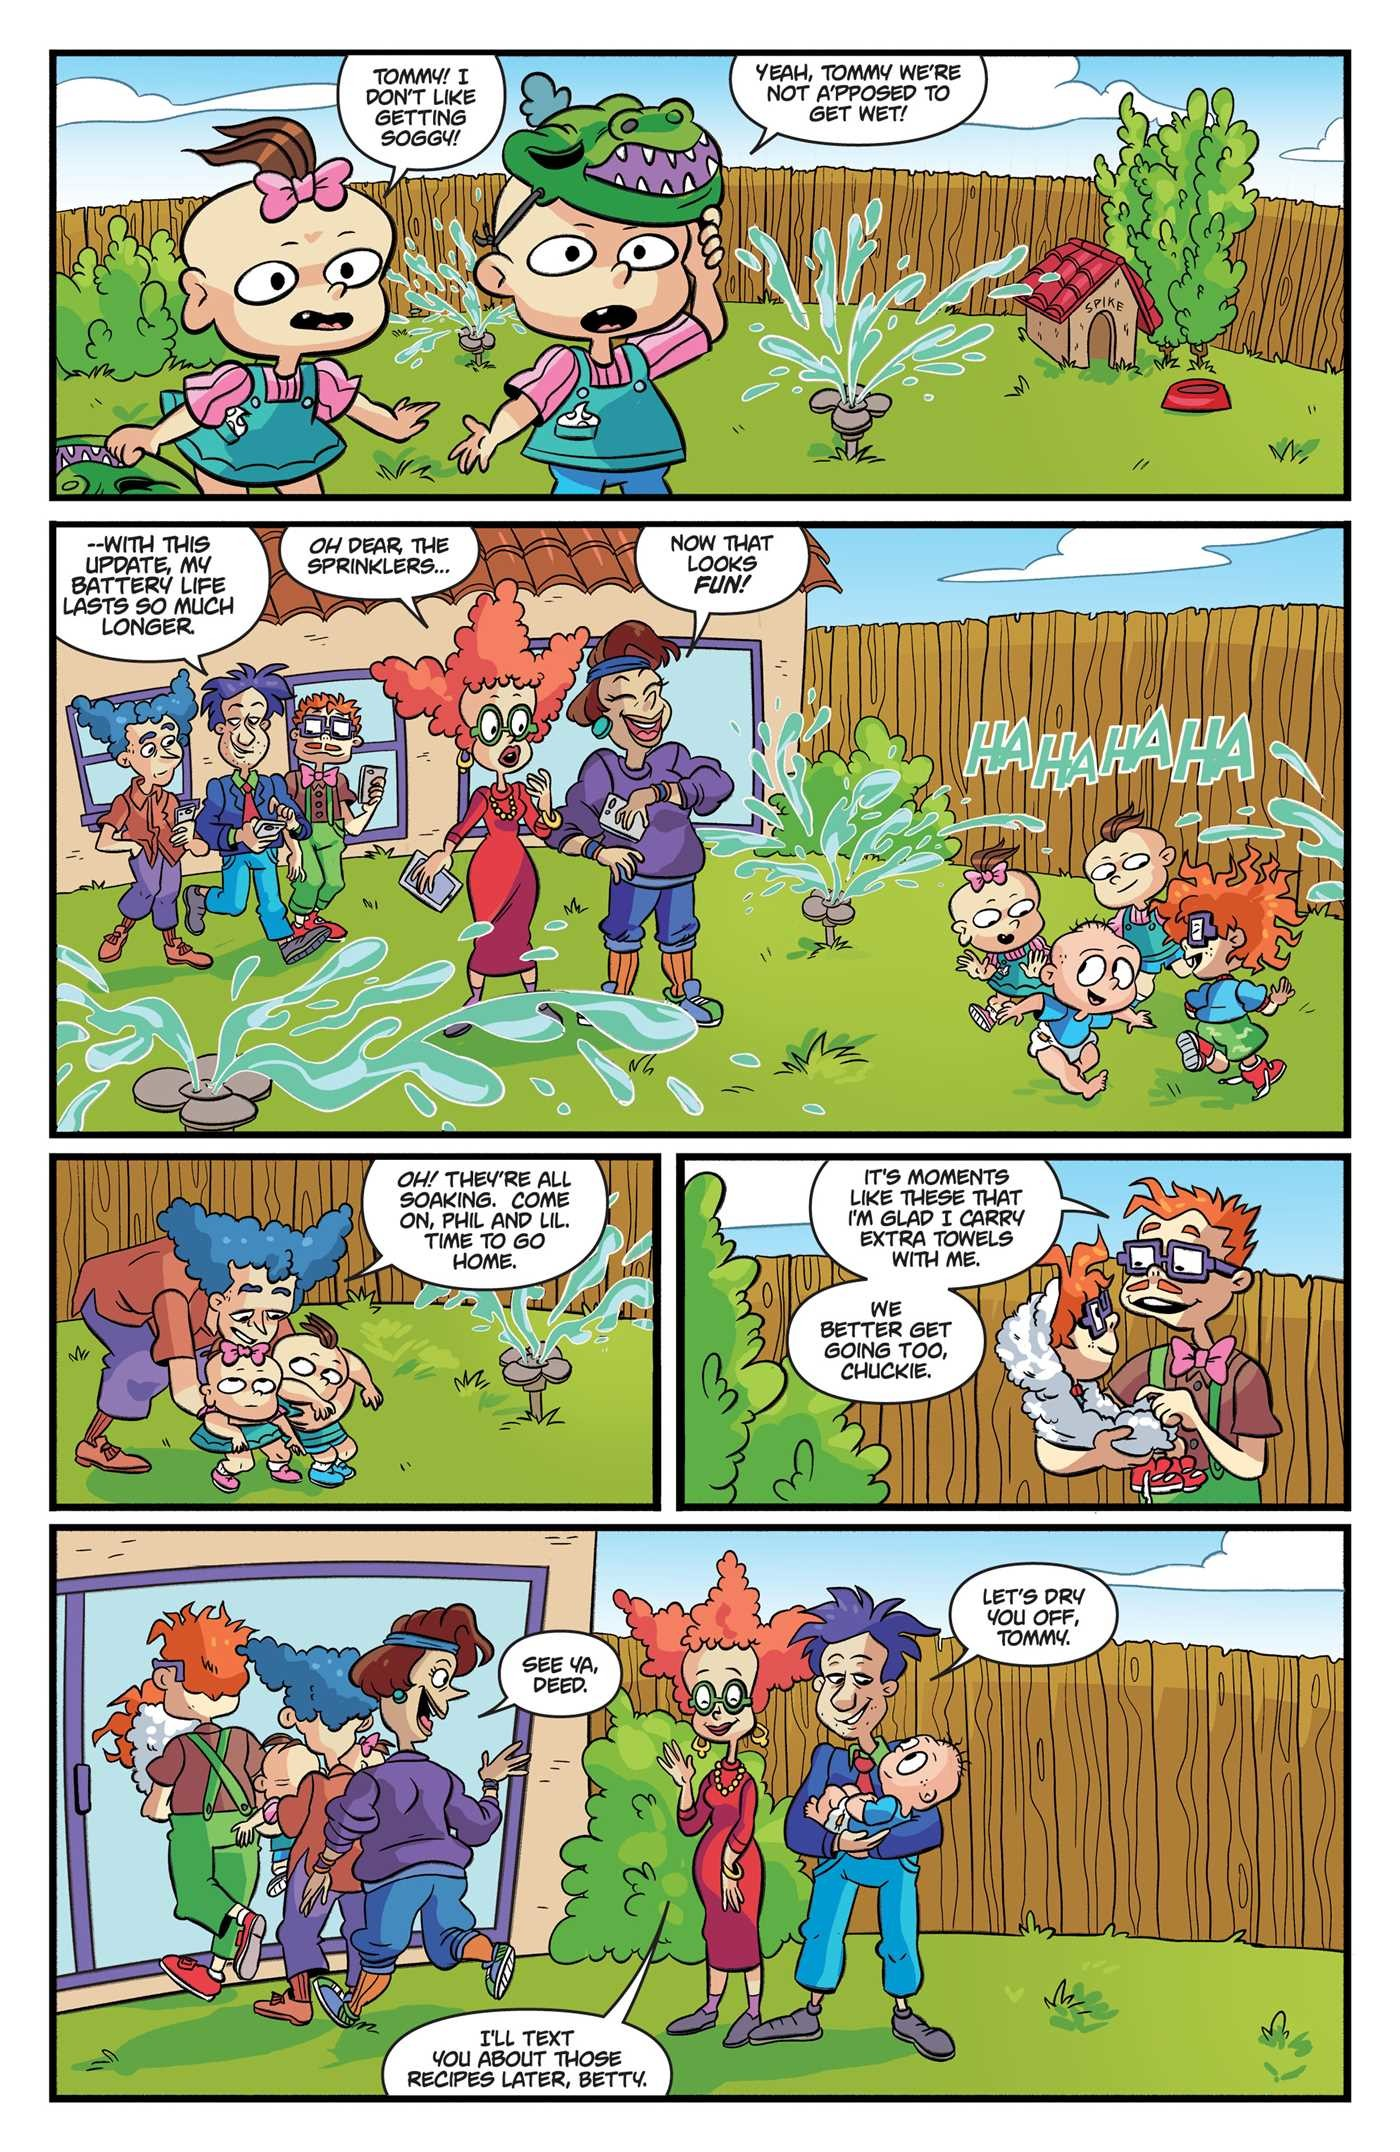 Rugrats vol 1 9781684151769.in03